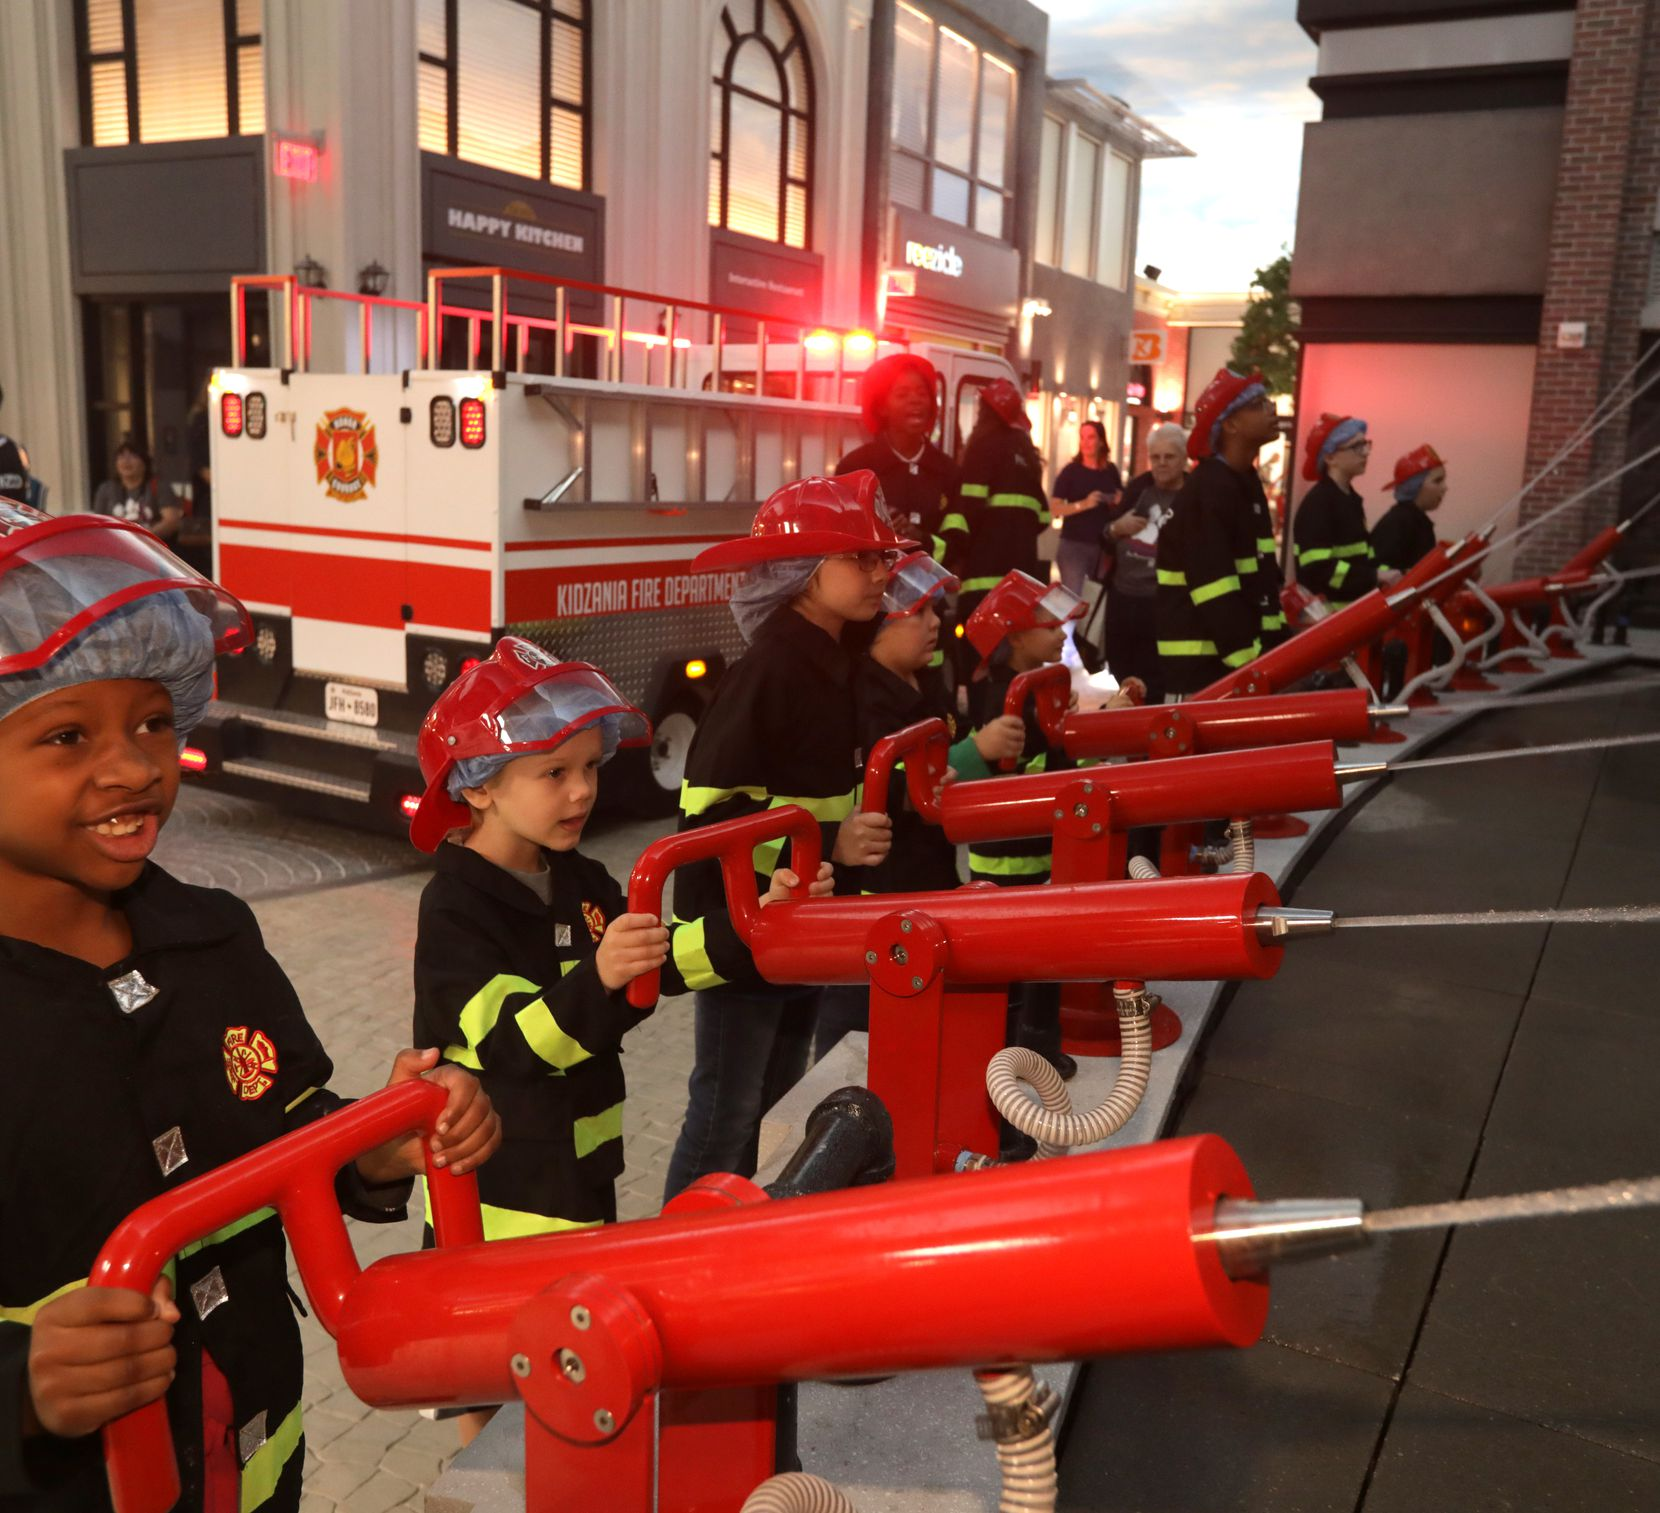 Children play as firefighters at Stonebriar Centre's KidZania, an interactive entertainment venue for kids in Frisco.